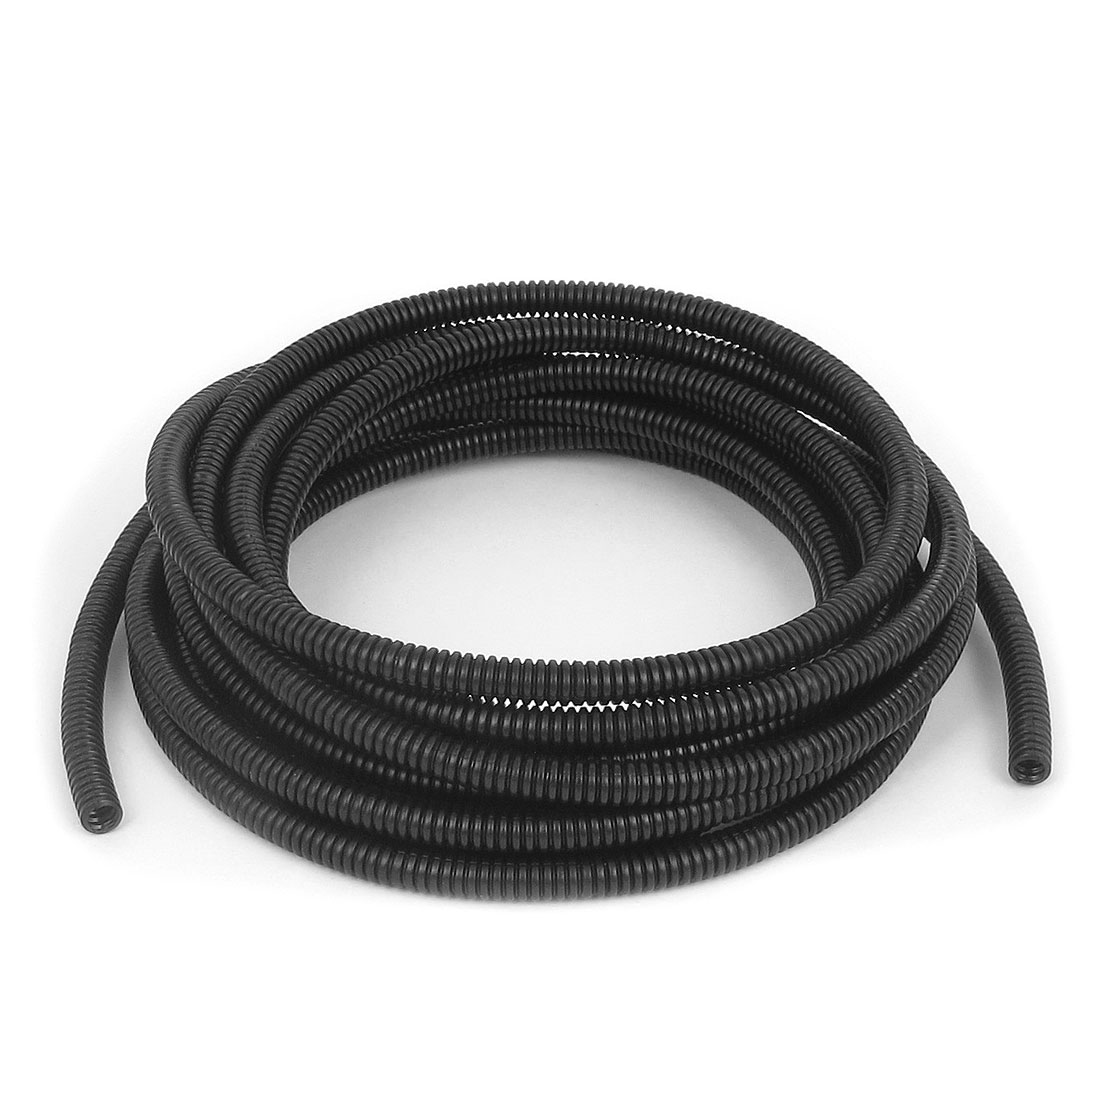 5mm Inner Dia Flexible Corrugated Bellows Tube Hose Cable Tubing Black 4.2m 13.8Ft Long